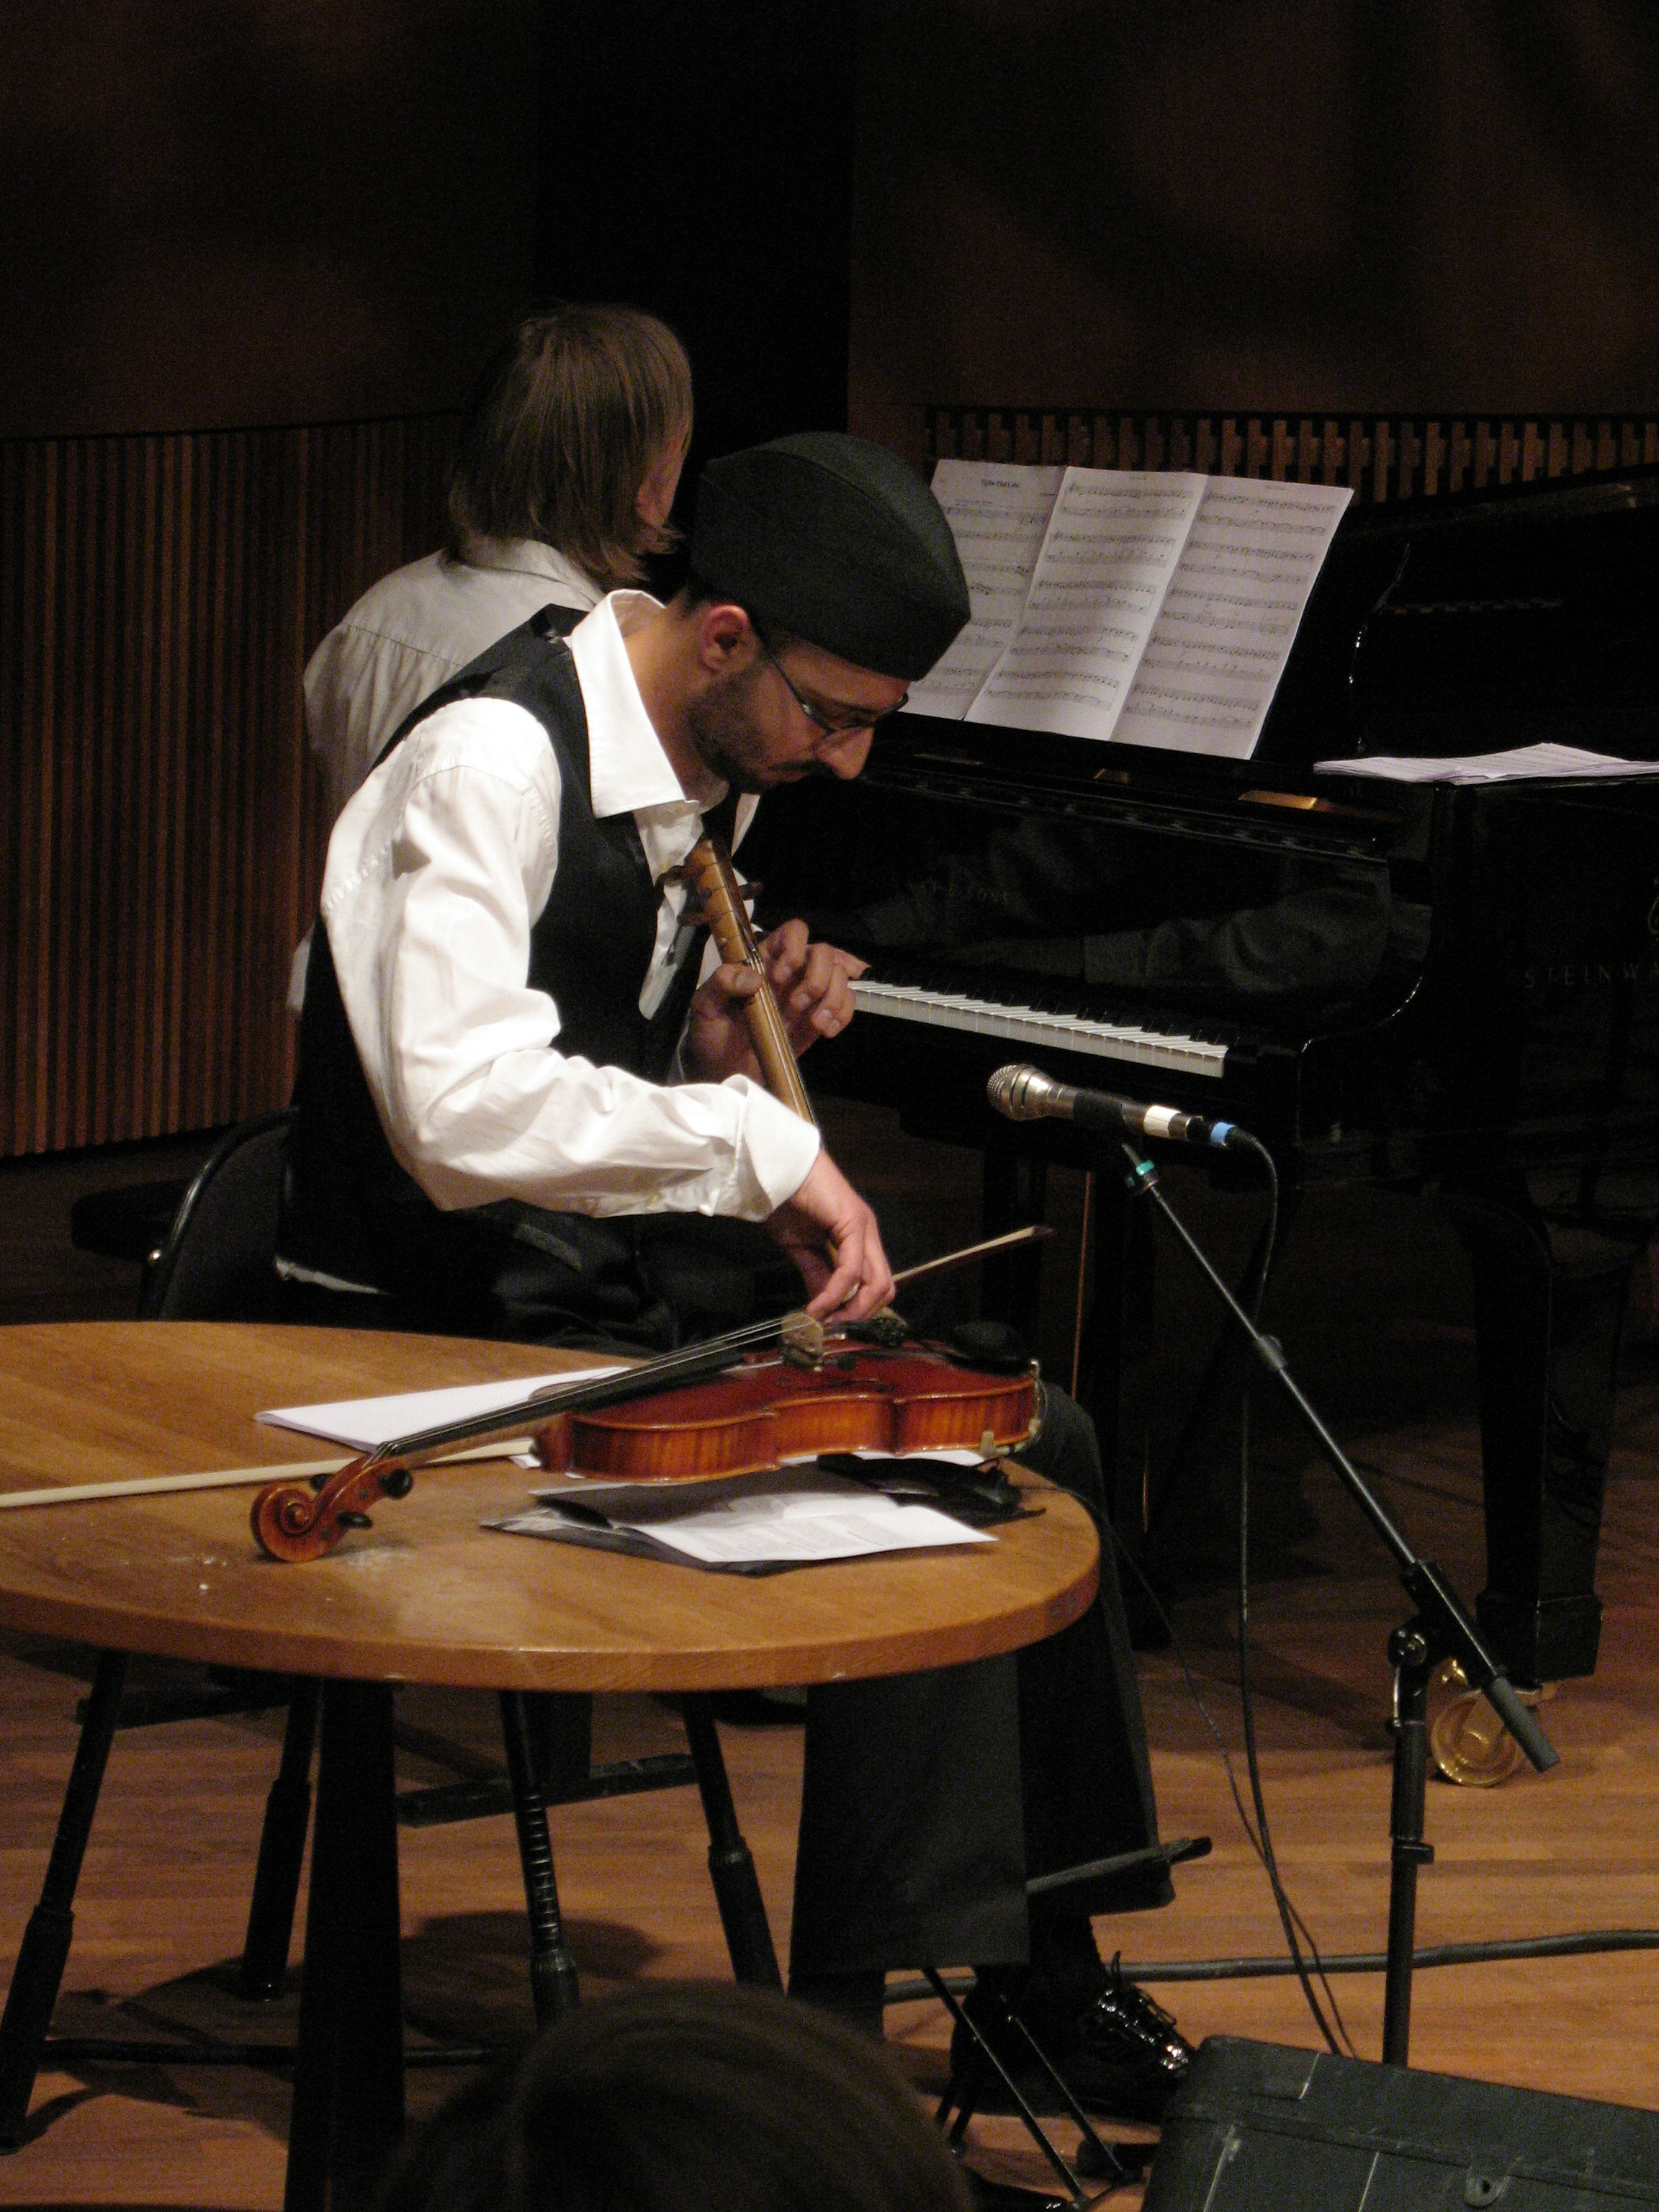 Pictures from the examination concert 048.jpg